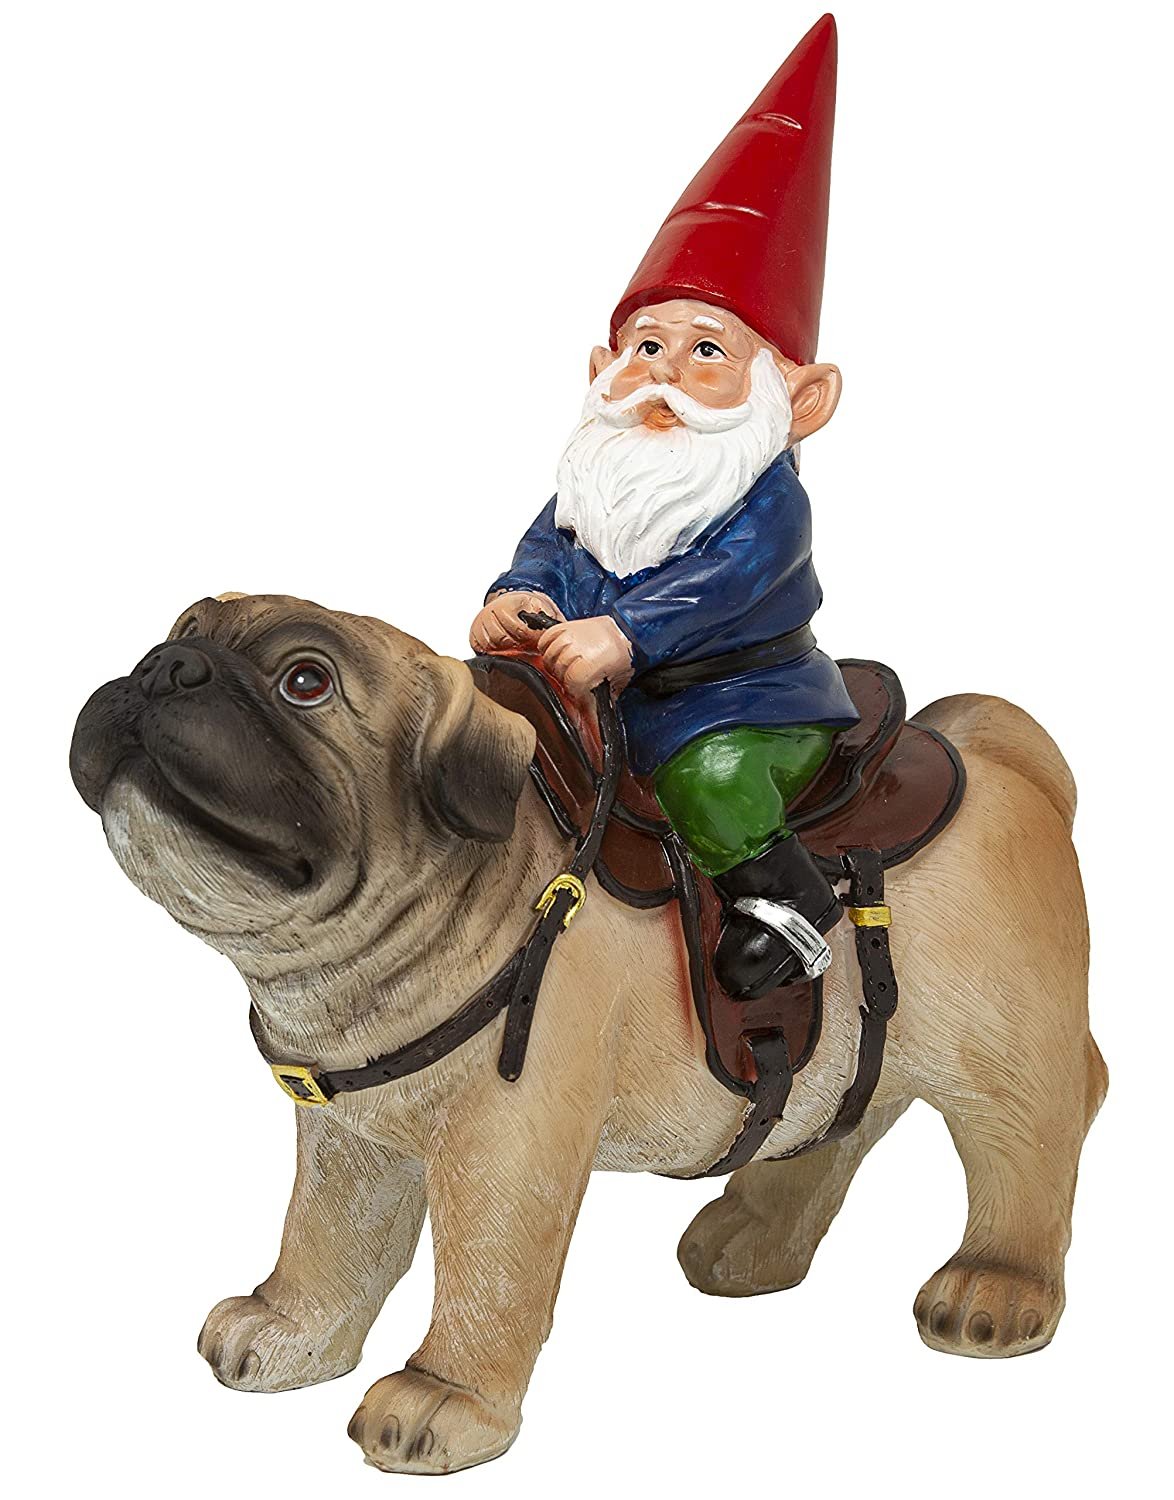 Funny Guy Mugs Garden Gnome Statue - Gnome Riding a Pug - Indoor/Outdoor Garden Gnome Sculpture for Patio, Yard or Lawn